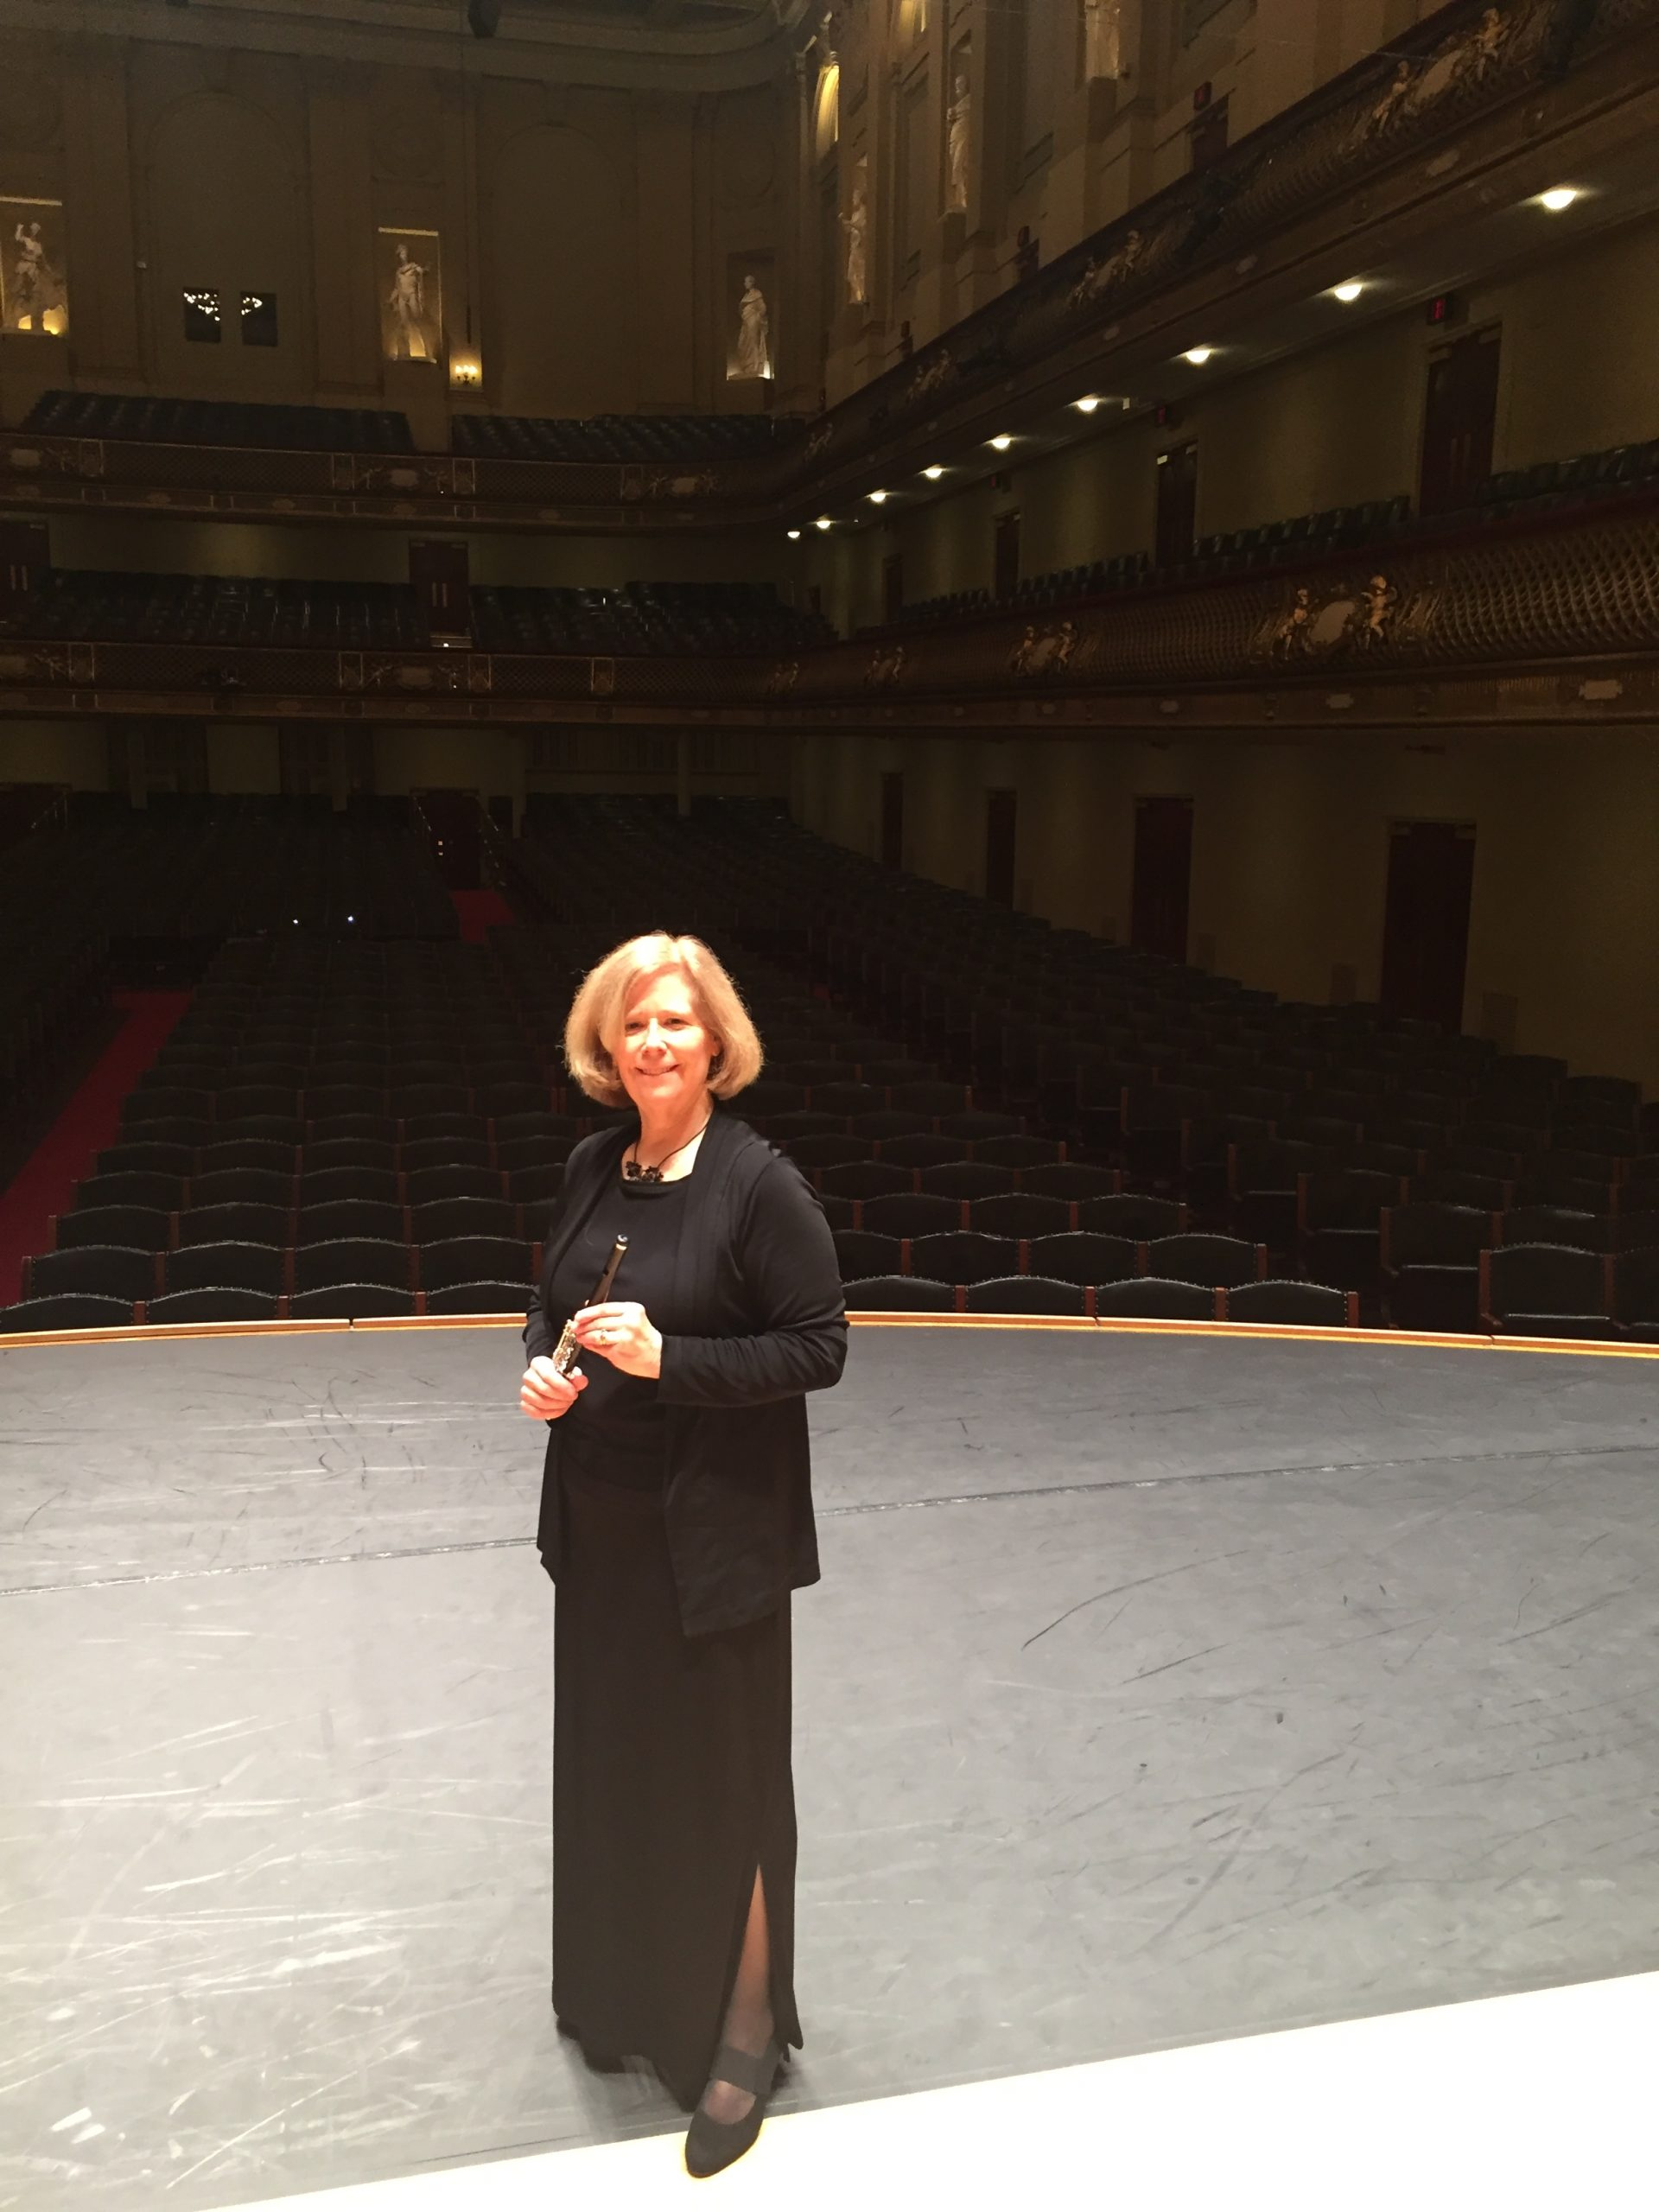 Jeanne at Symphony Hall